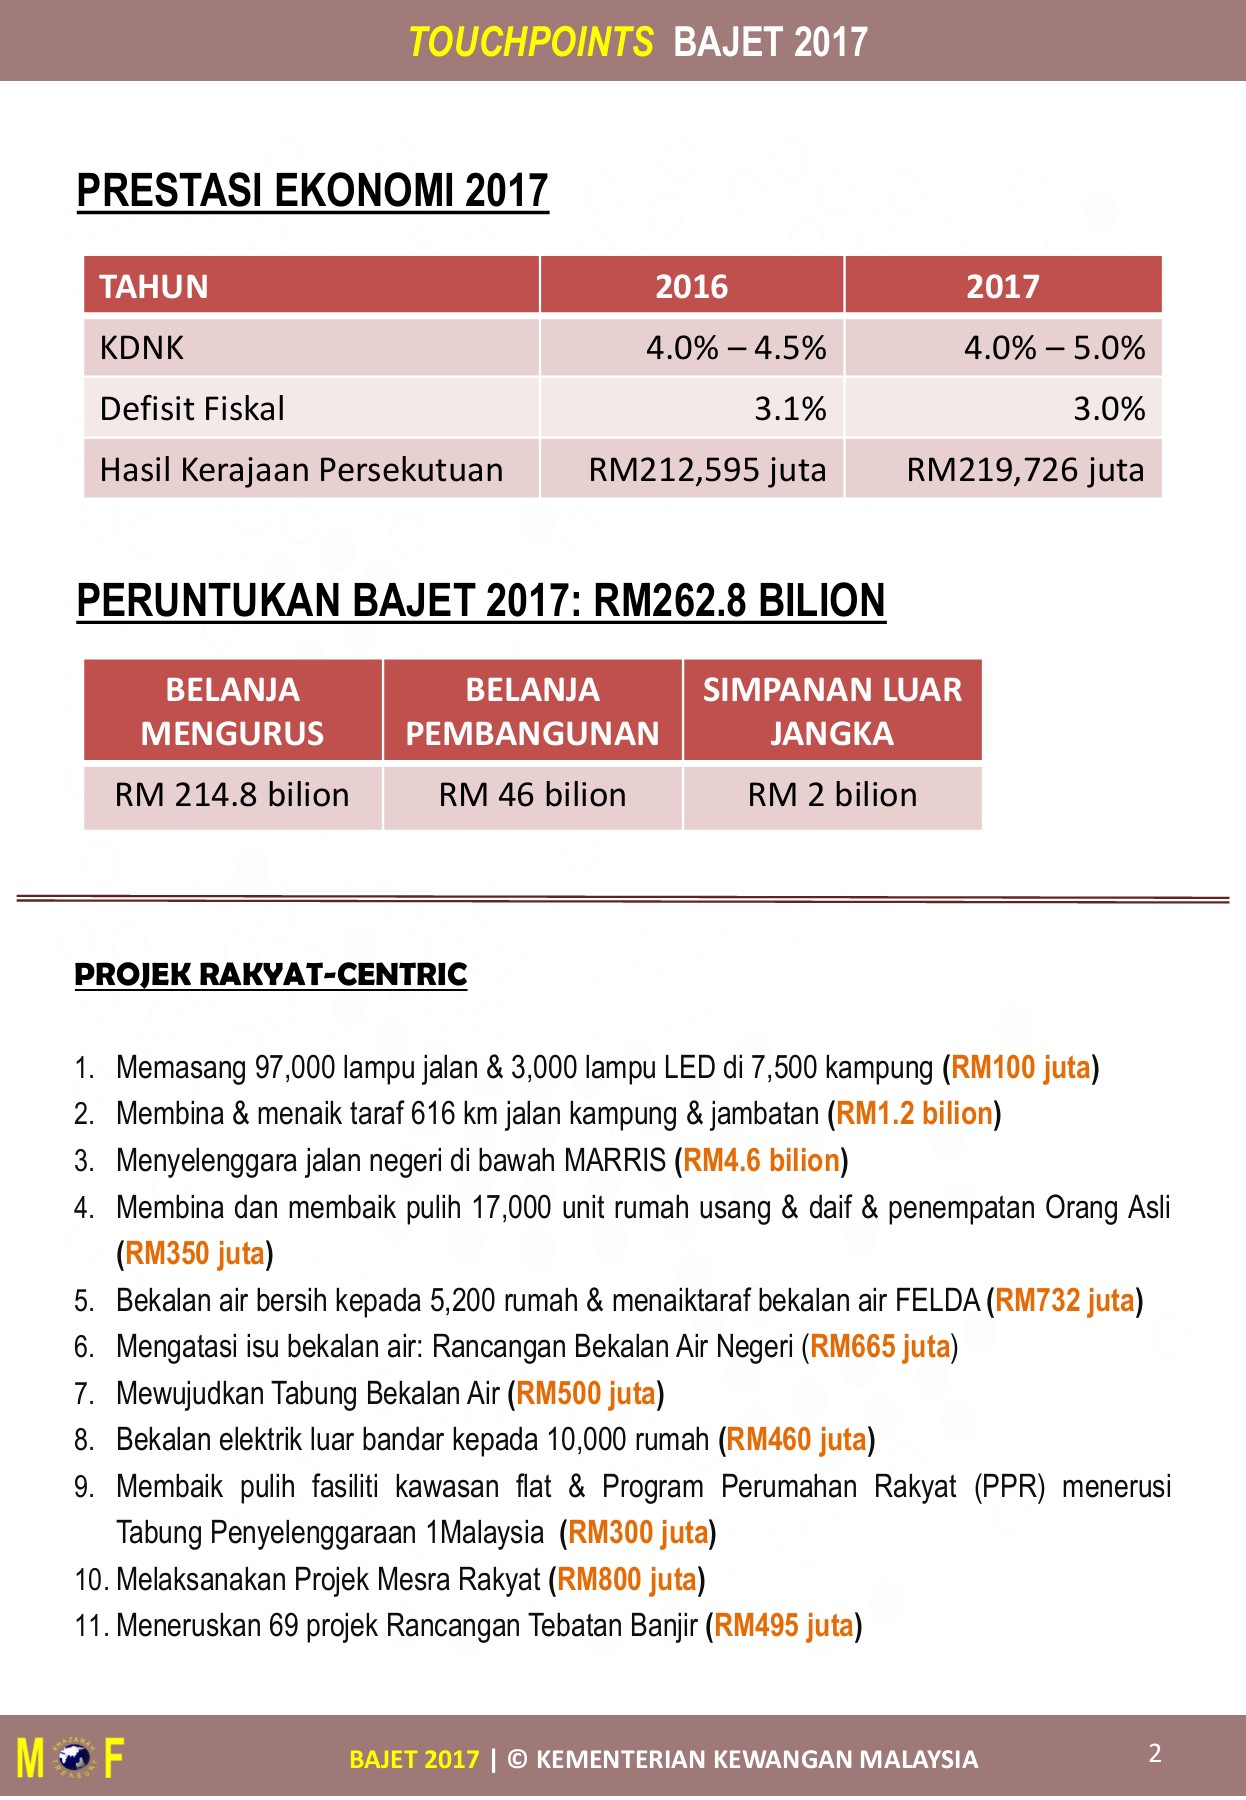 Bajet 2017 Touchpoints Pages 1 16 Text Version Anyflip